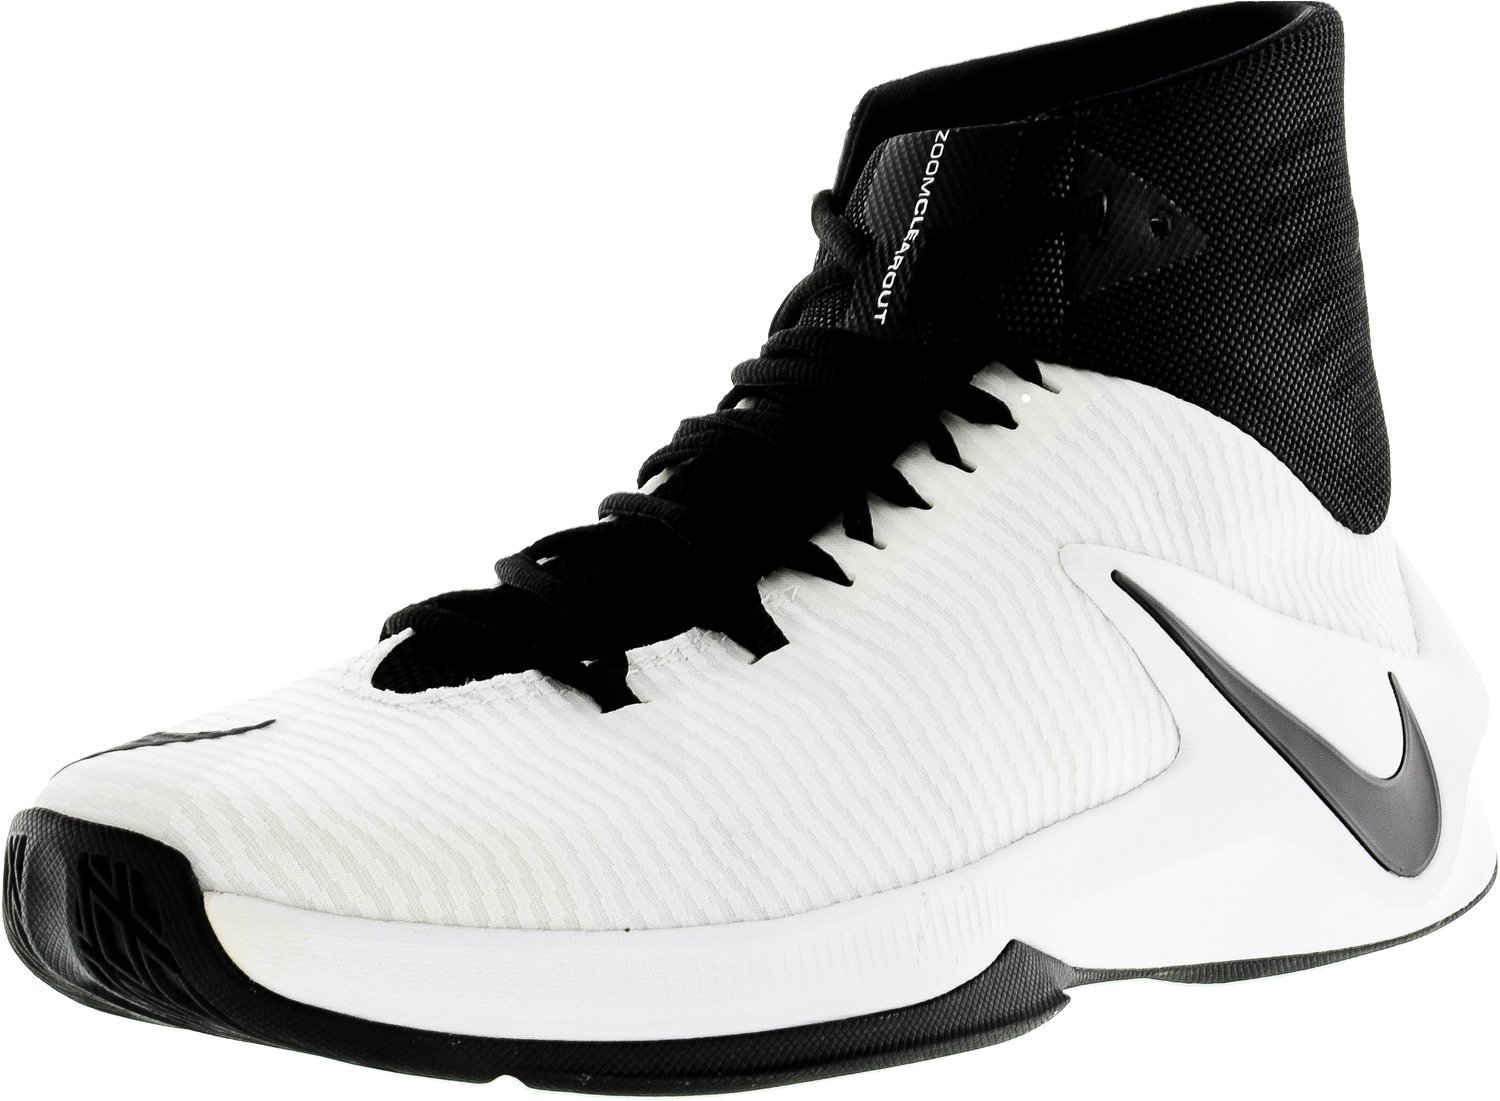 Nike Men's Zoom Clear Out TB Basketball Shoes B01MD2EF45 12 D(M) US Black / Black - White